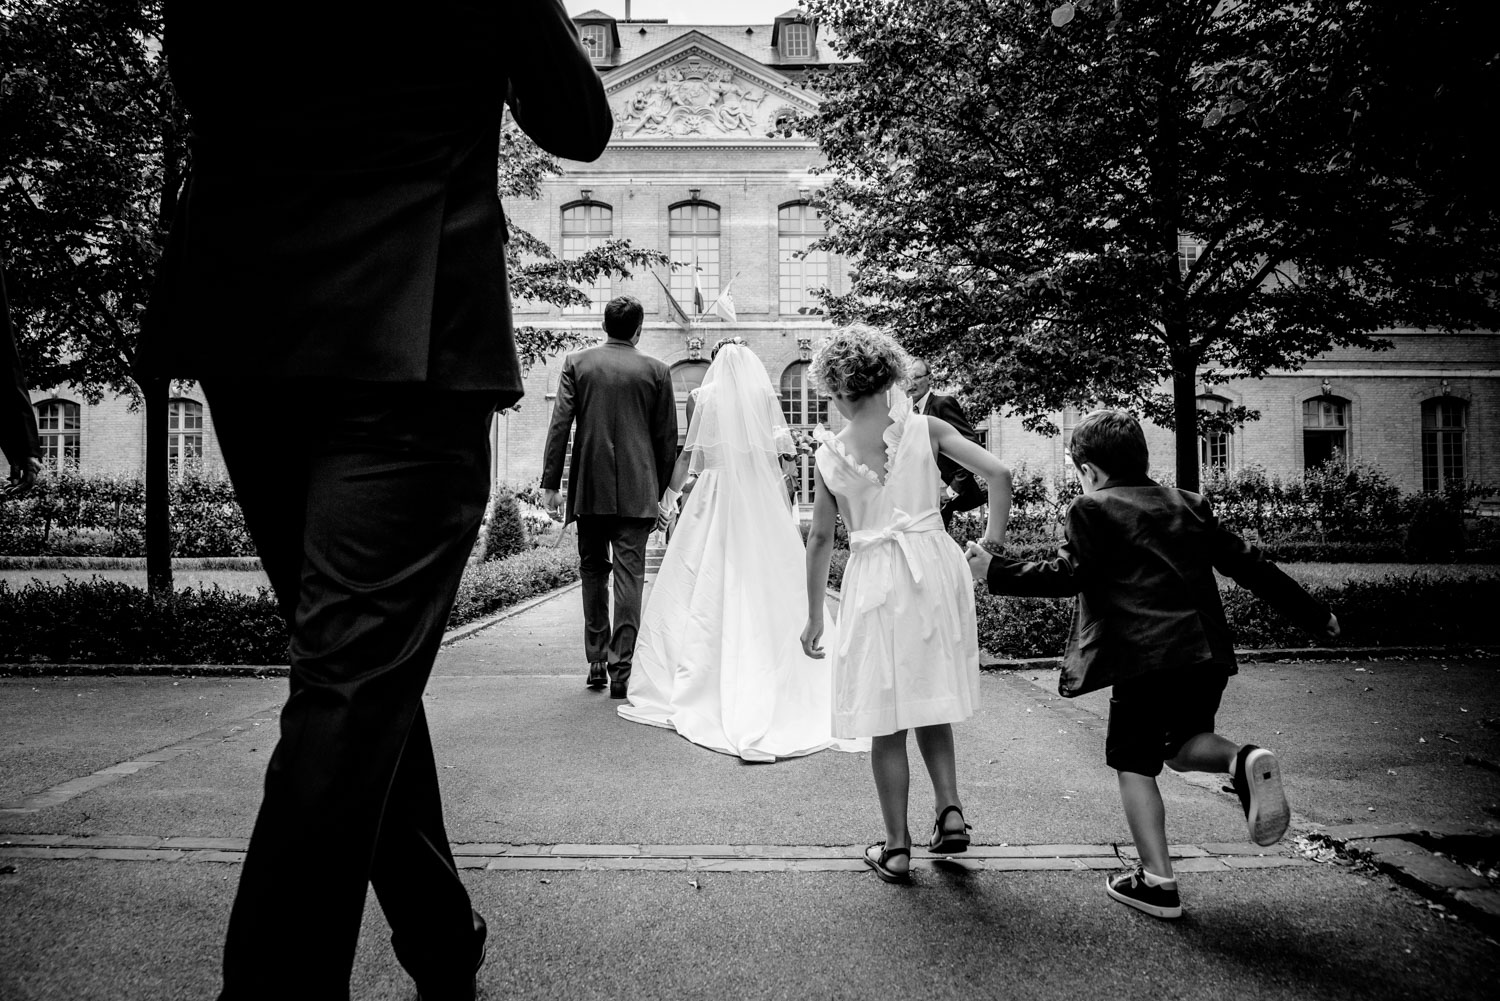 Going to the registry office in France